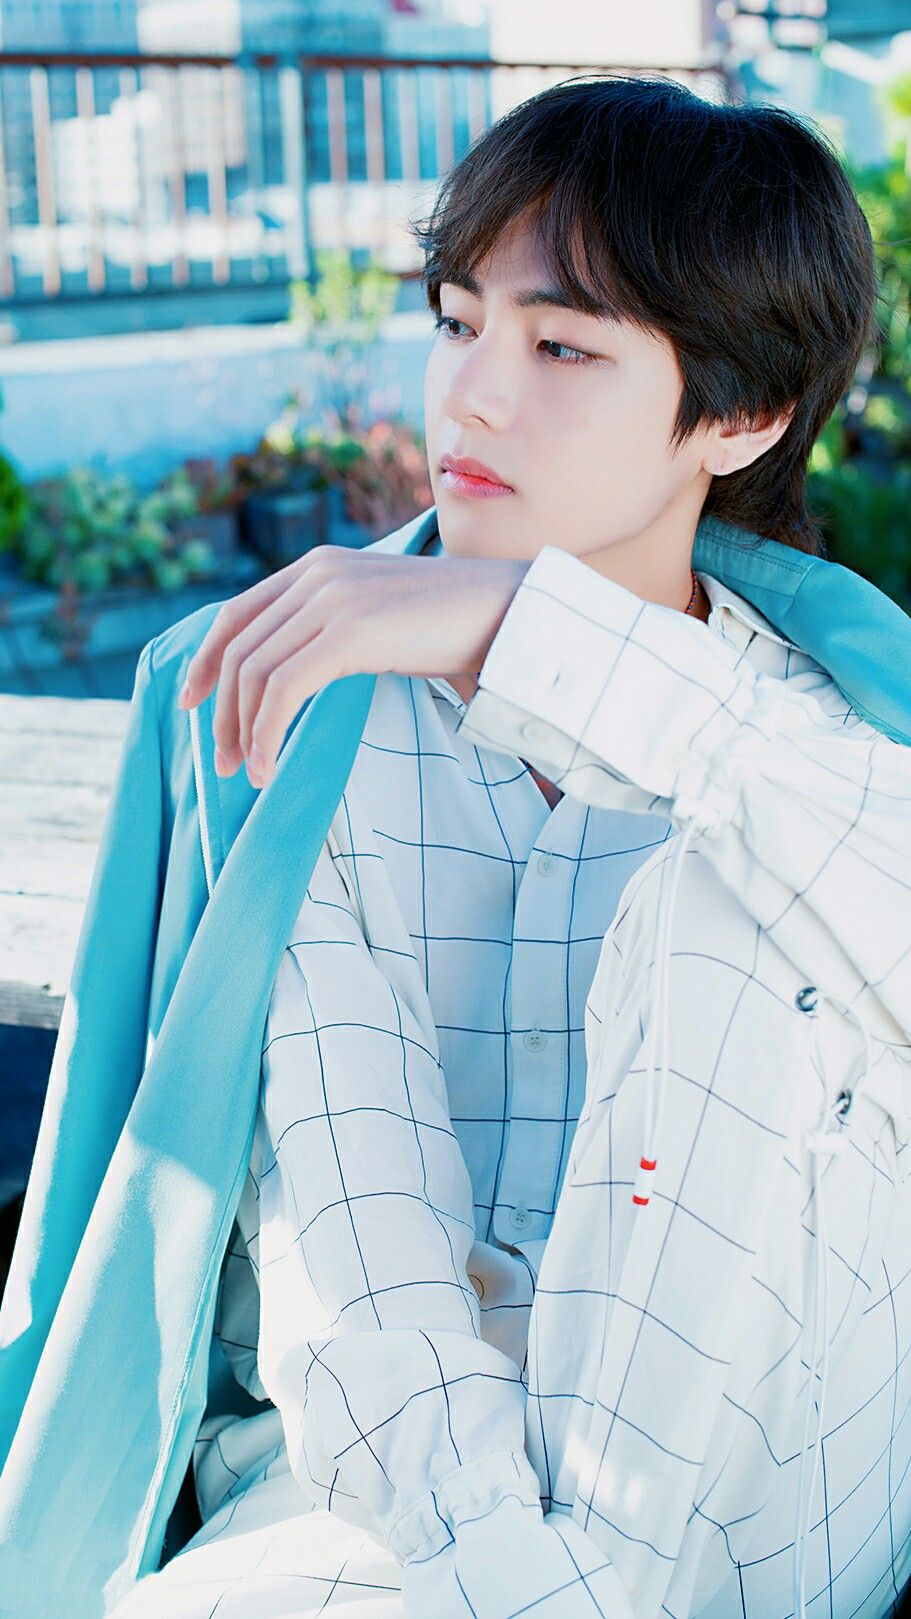 Bts Edits Bts Wallpapers Bts X Dispatch Bts 5th Anniversary Pls Make Sure To Follow Me Before U Save It Find More On My Account Bts V Taehyung Bts